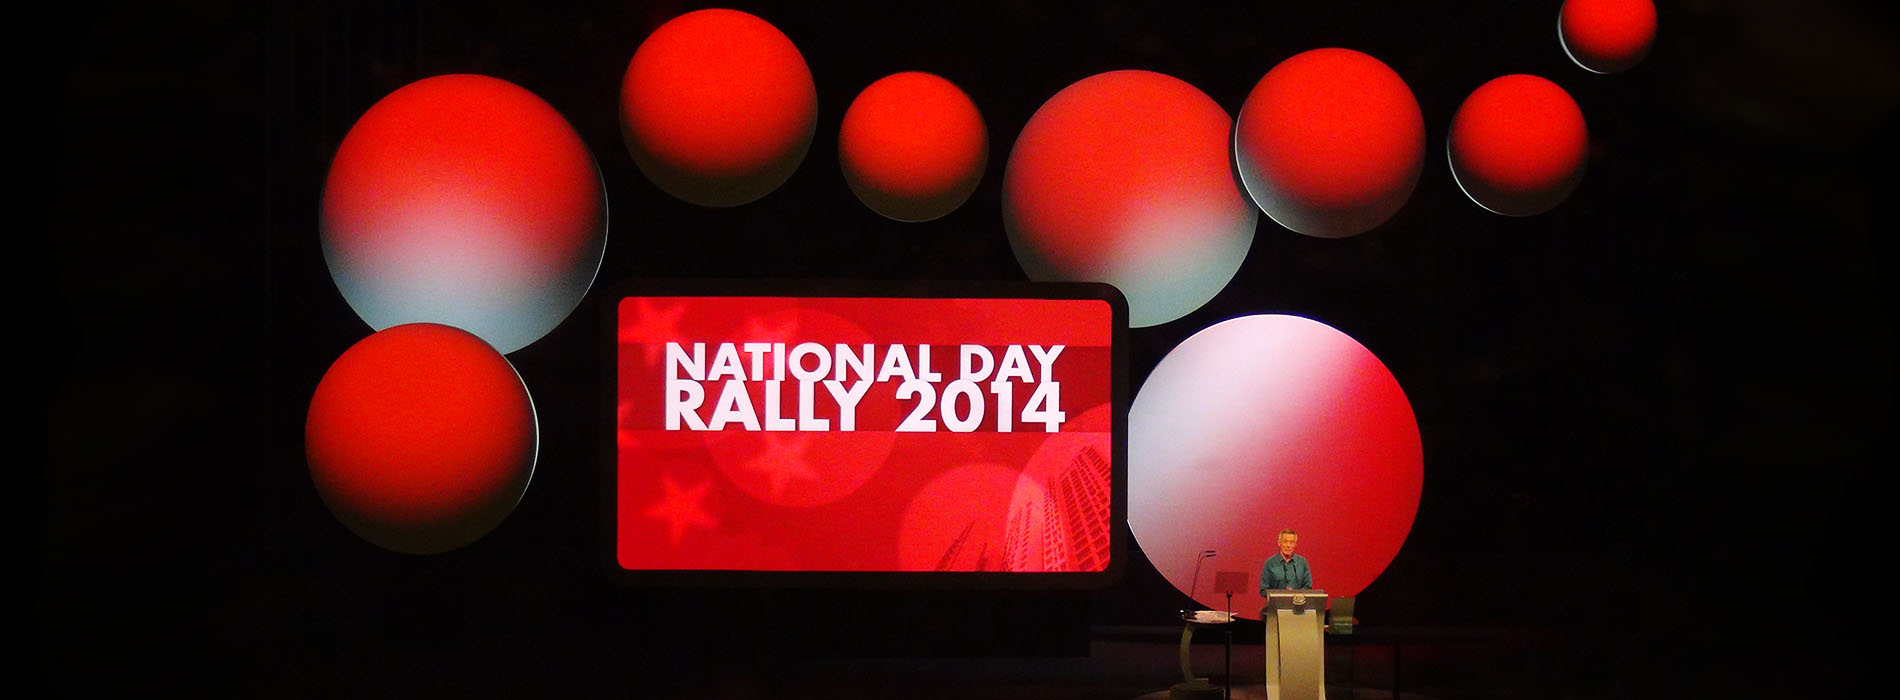 2014 09 National Day Rally 2014-MAIN